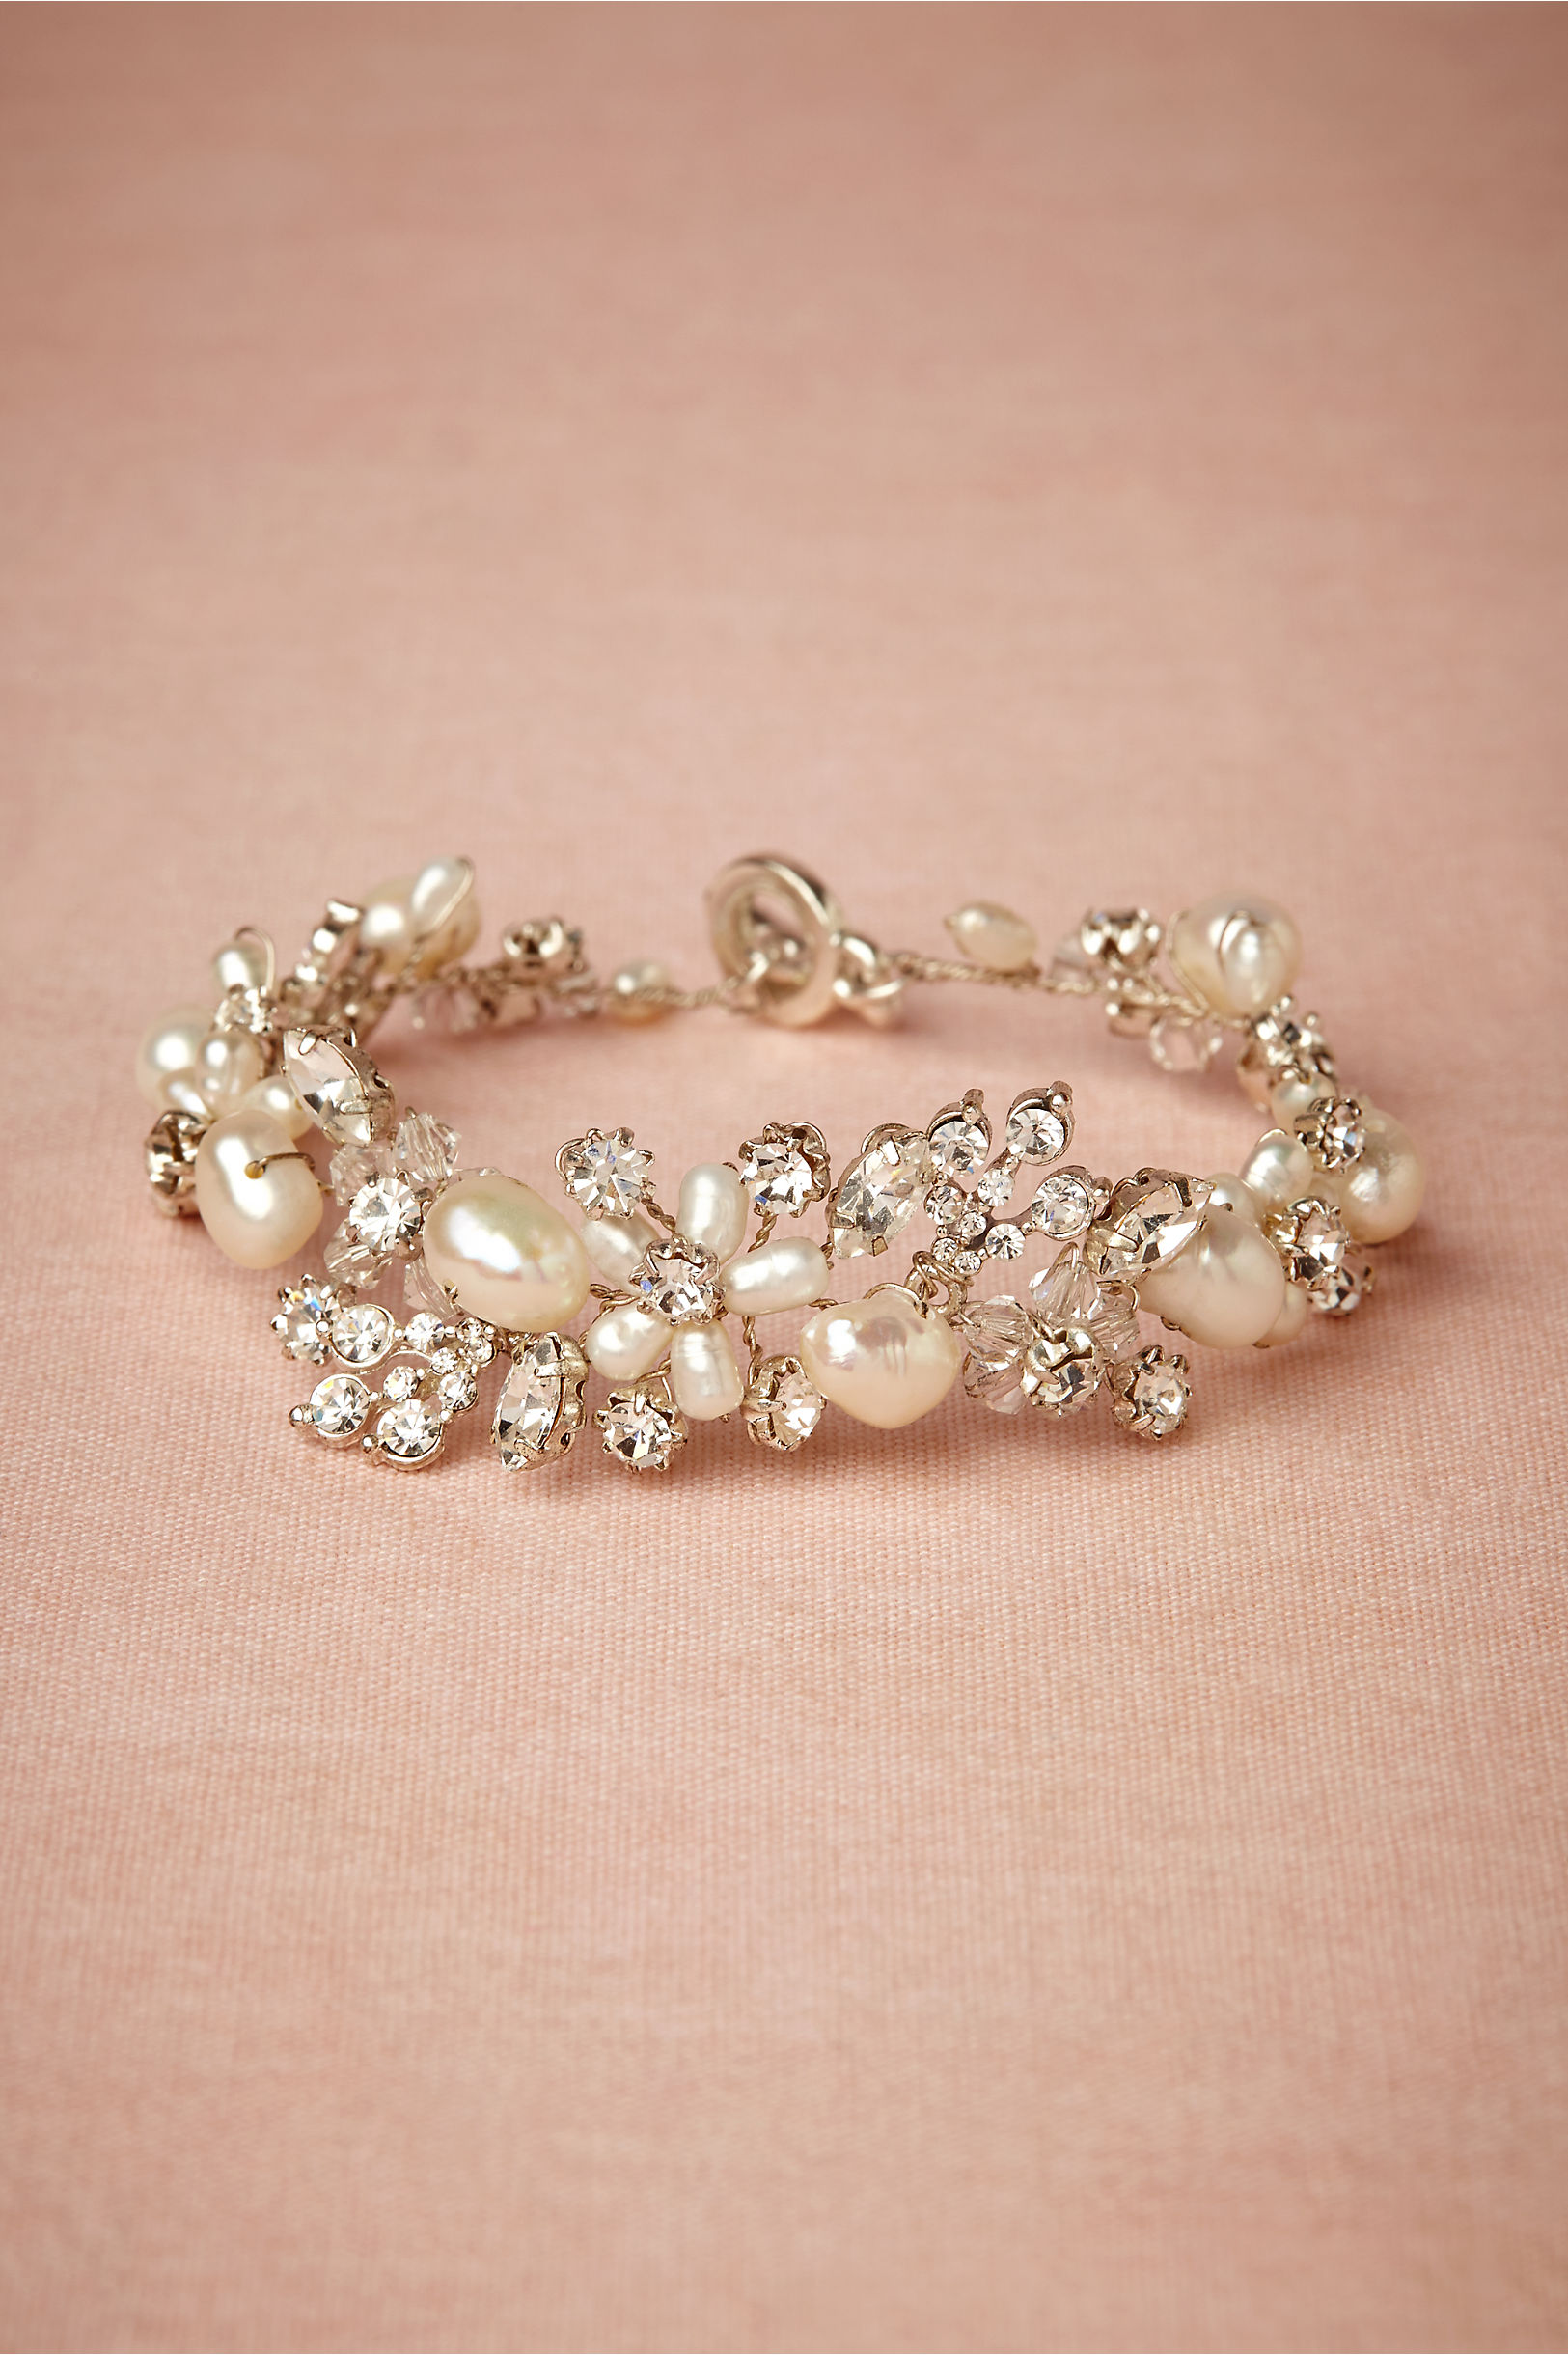 Perle Bracelet in Shoes & Accessories | BHLDN